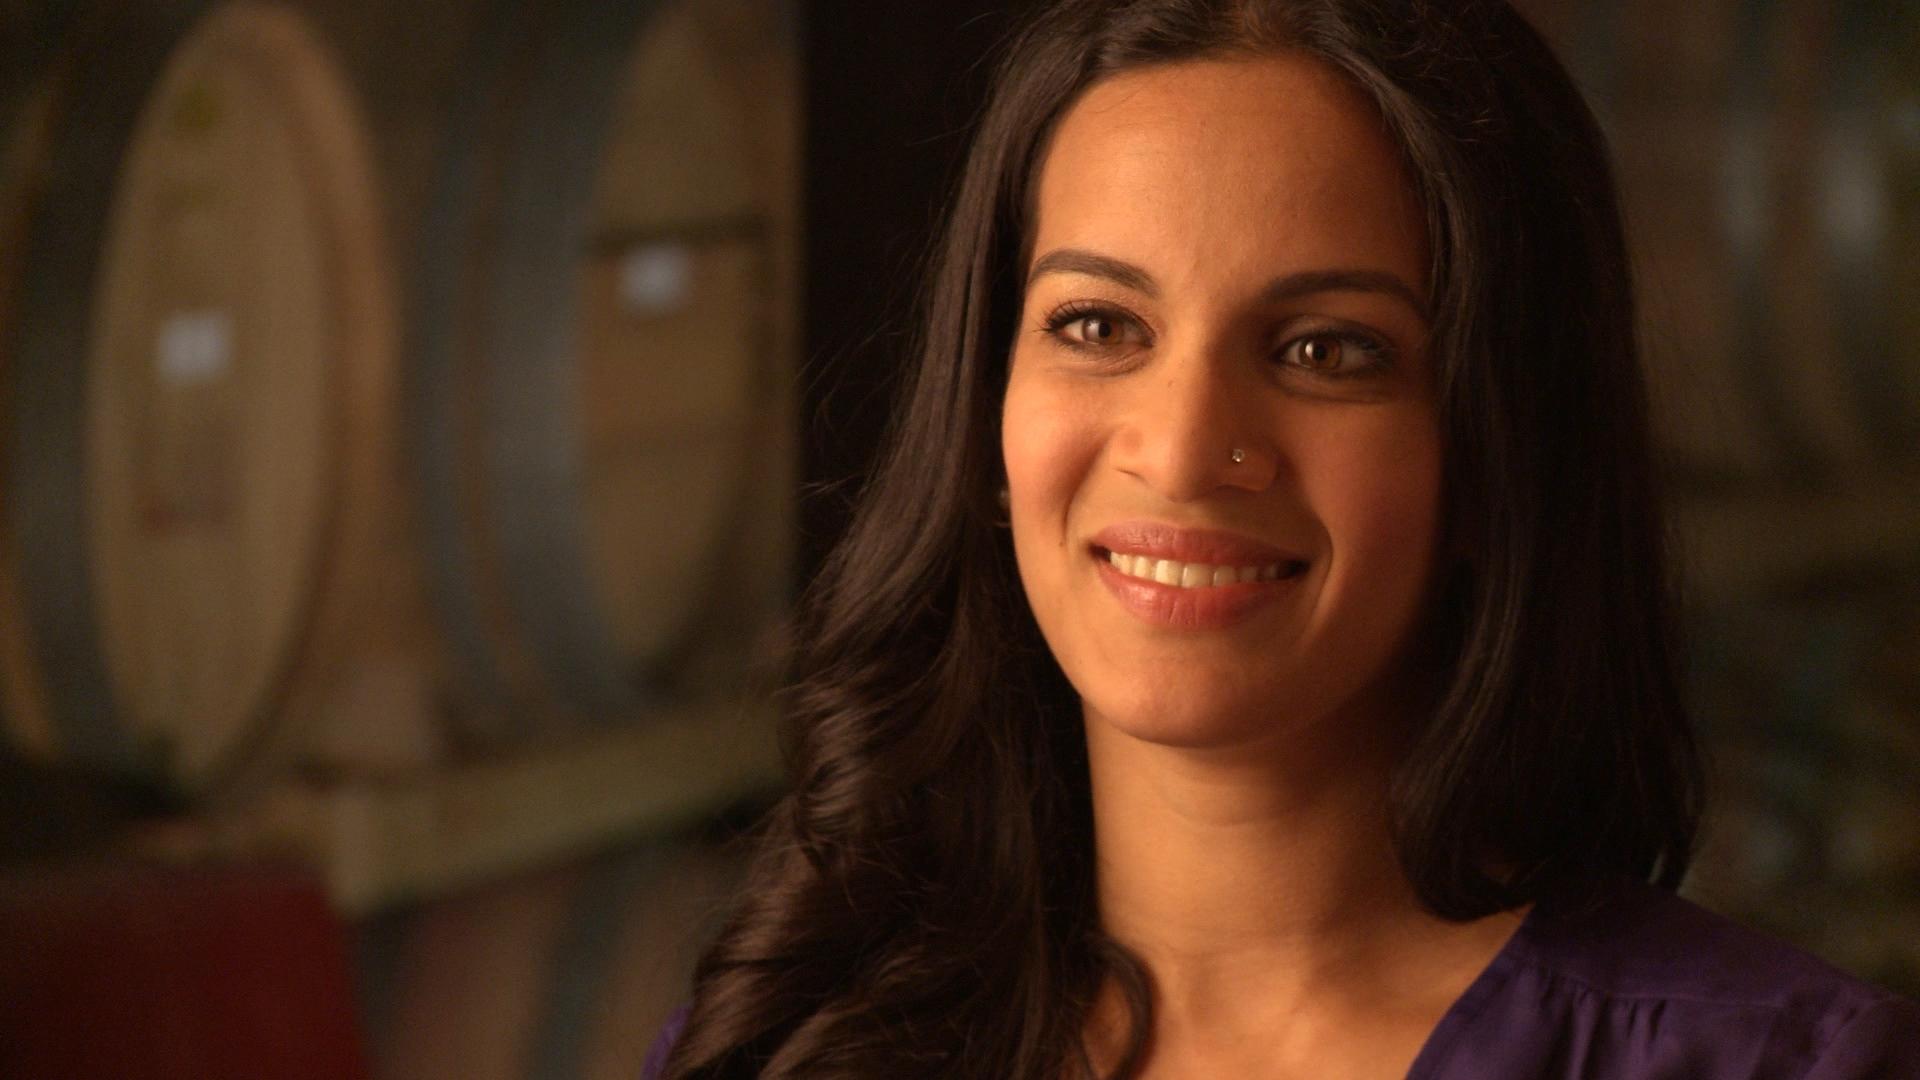 Quick Hits: An Interview with Anoushka Shankar